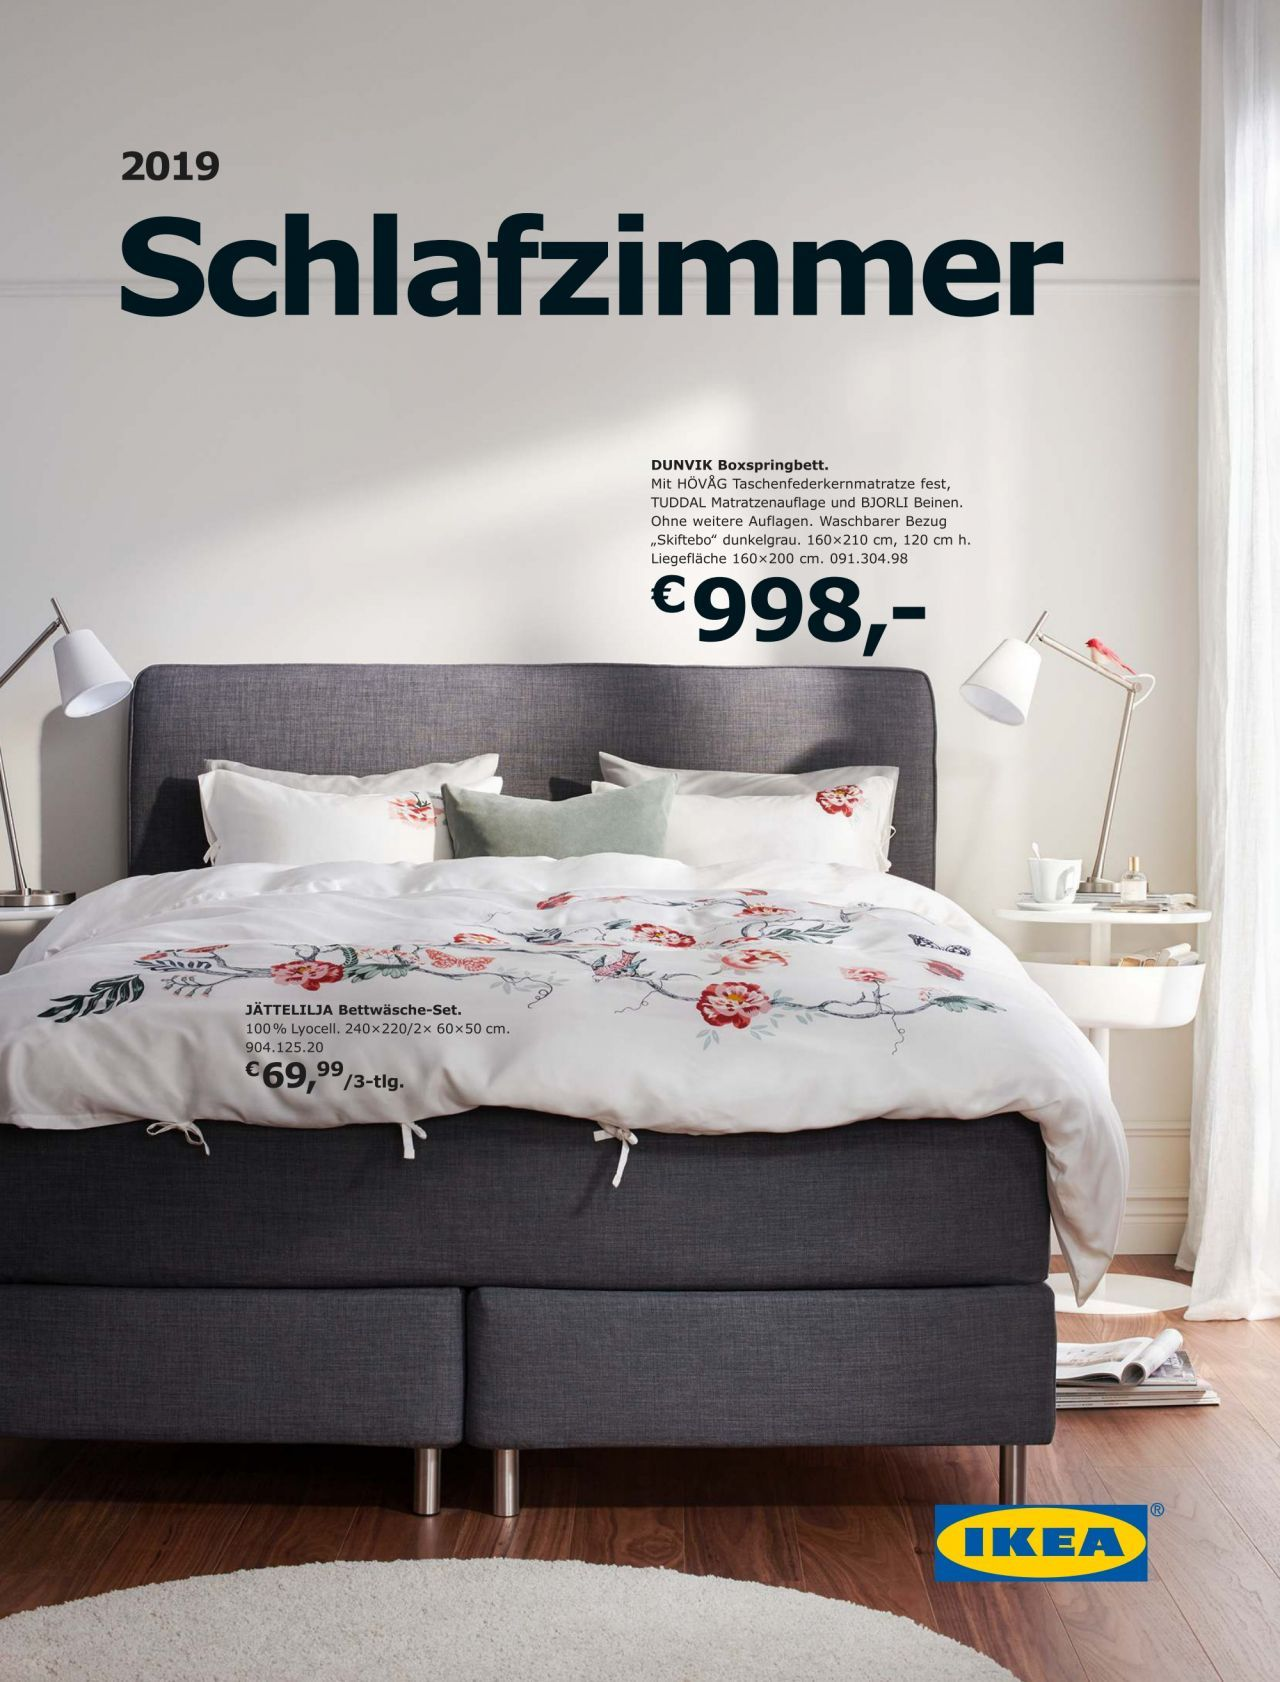 Schlafzimmer Ikea Katalog With Images Shared Bedroom Bed